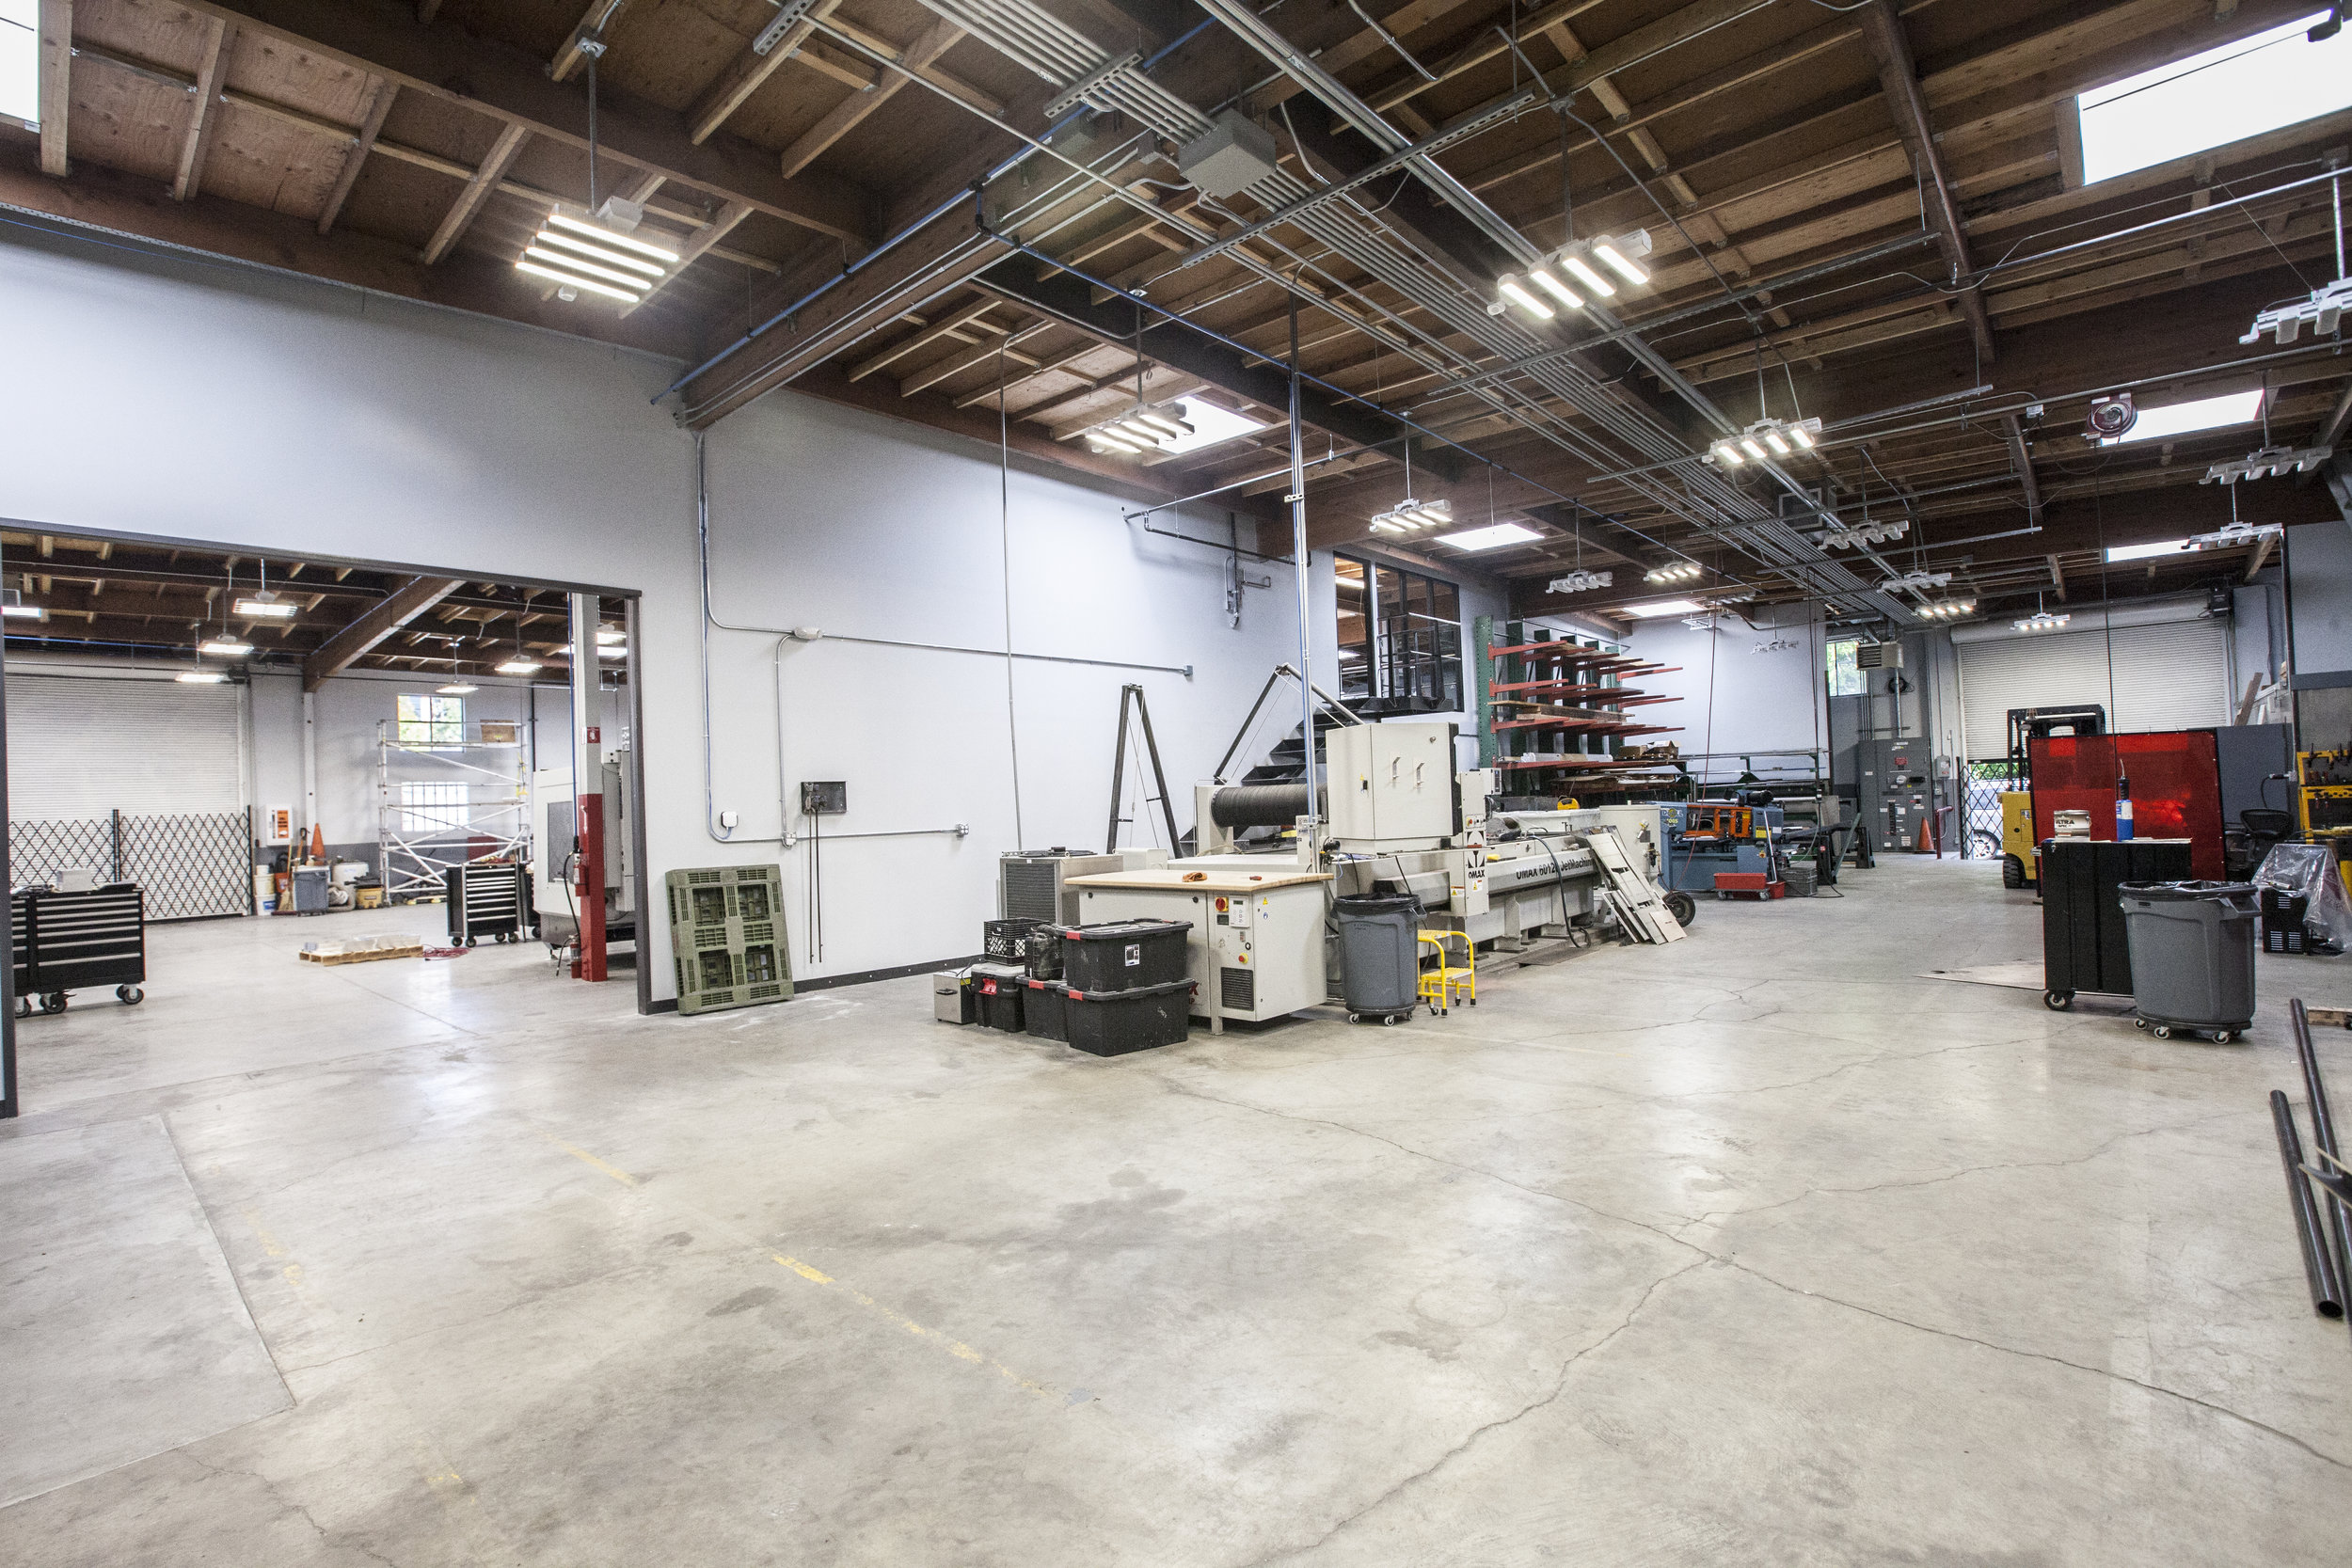 The new space is functional and efficient for this private metal shop.